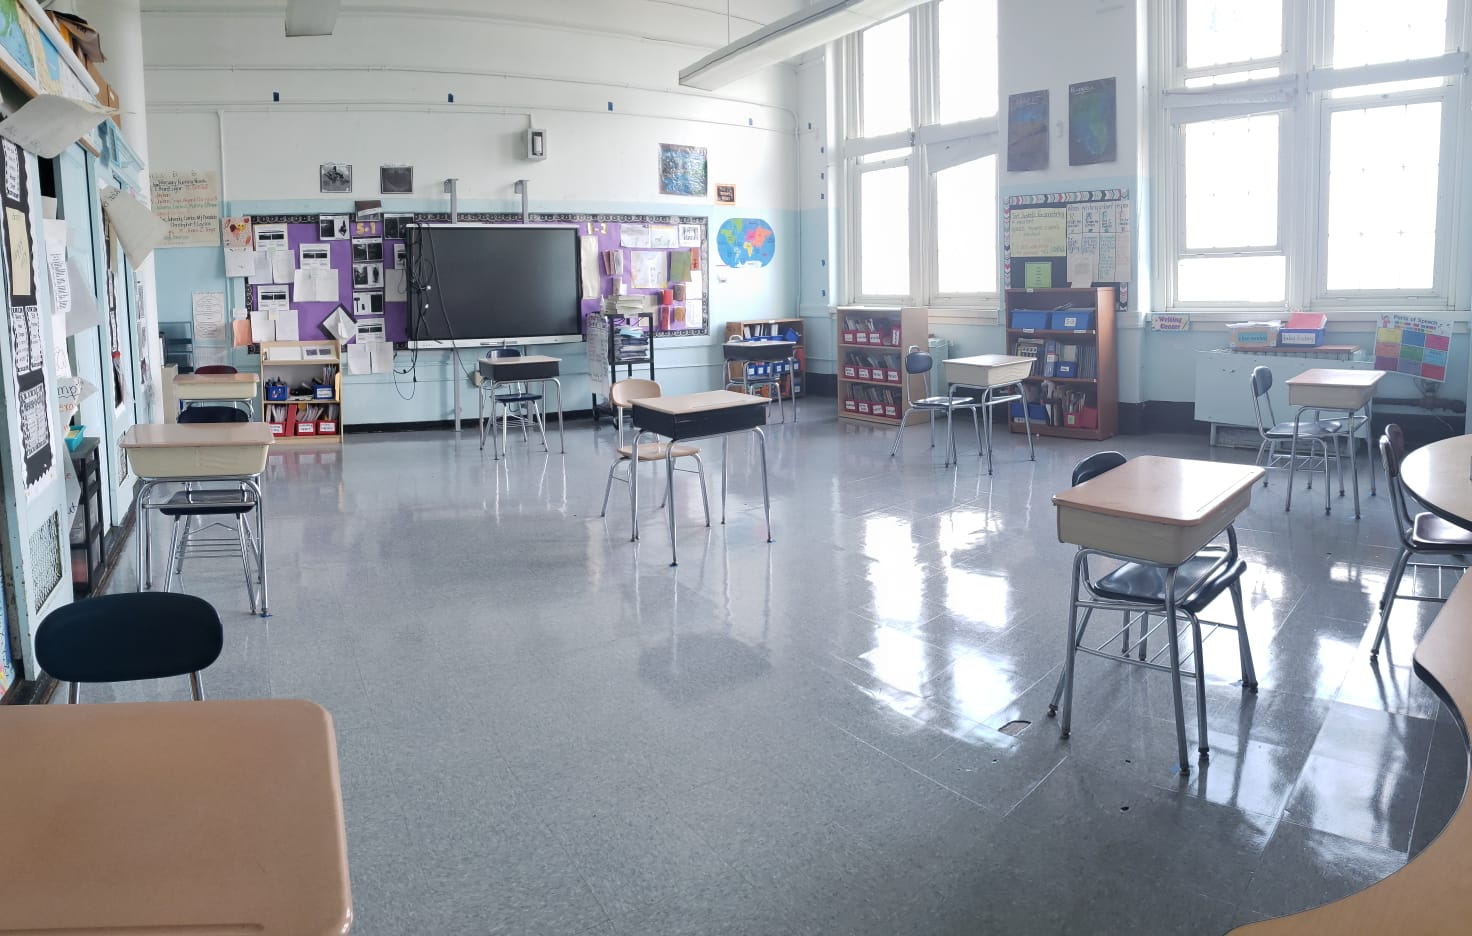 Classroom showing windows and desks